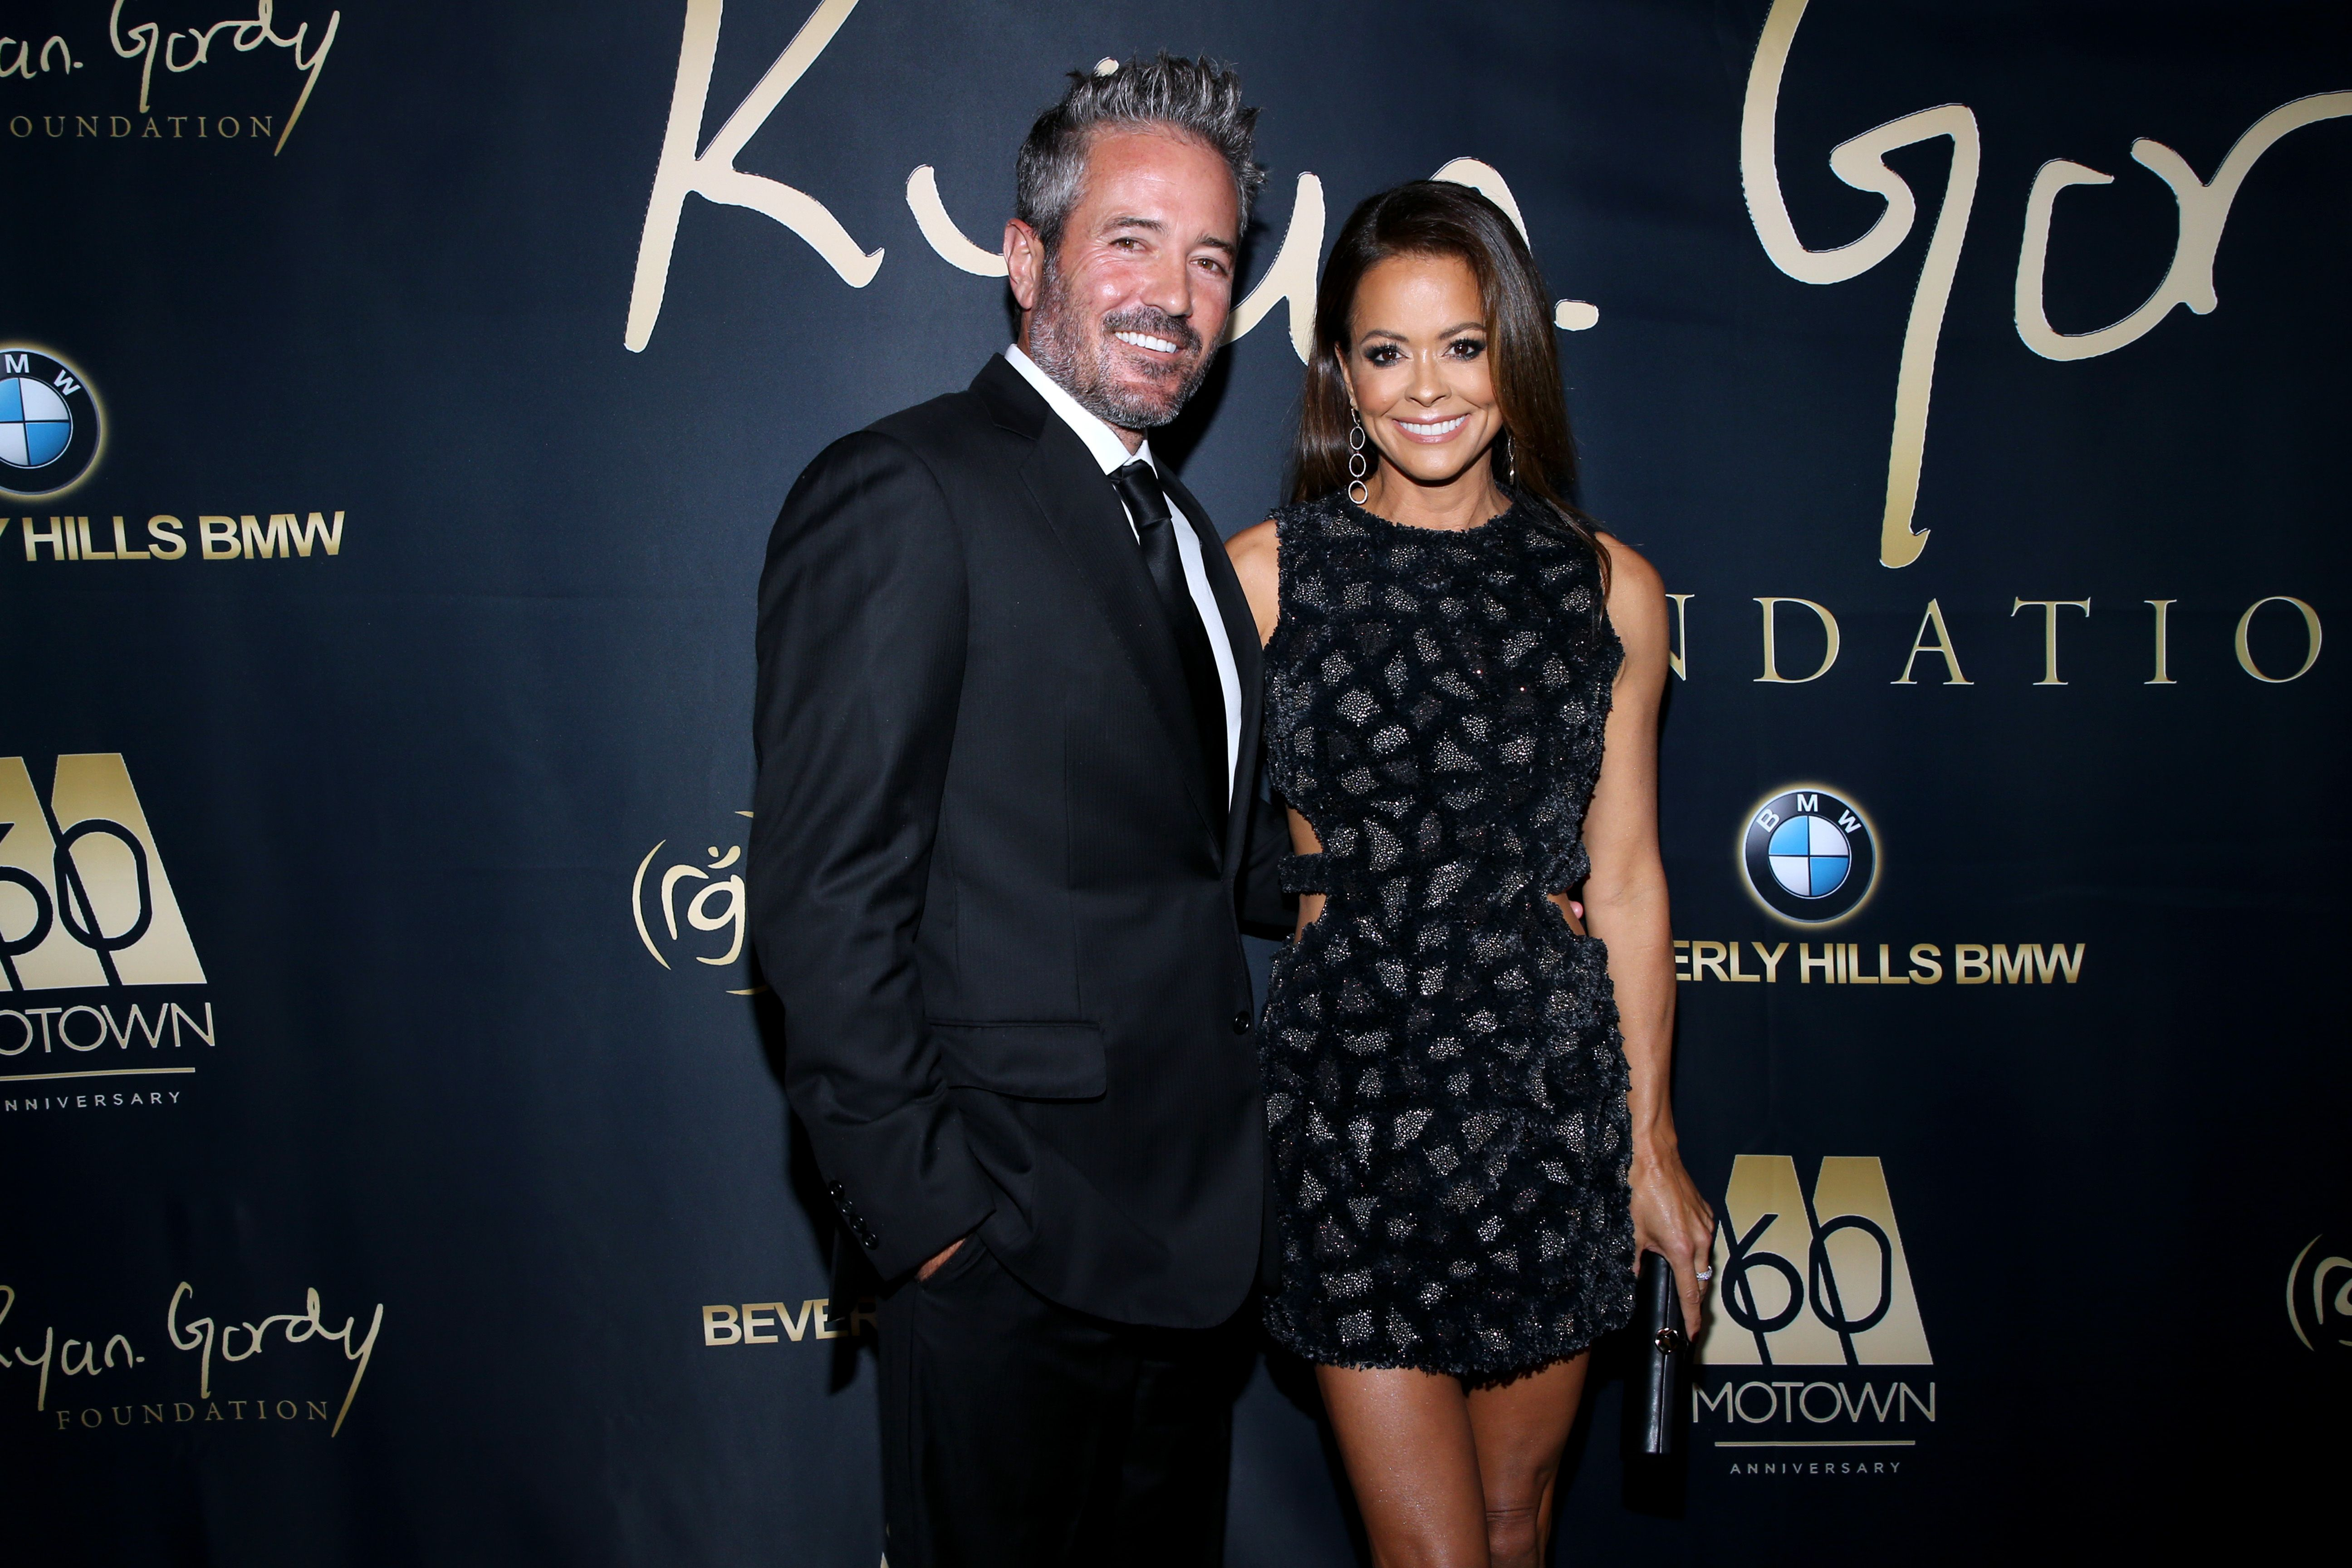 Scott Rigsby and Brooke Burke at Ryan Gordy Foundation Celebrates 60 Years of Mowtown at Waldorf Astoria Beverly Hills on November 11, 2019 | Photo: Getty Images